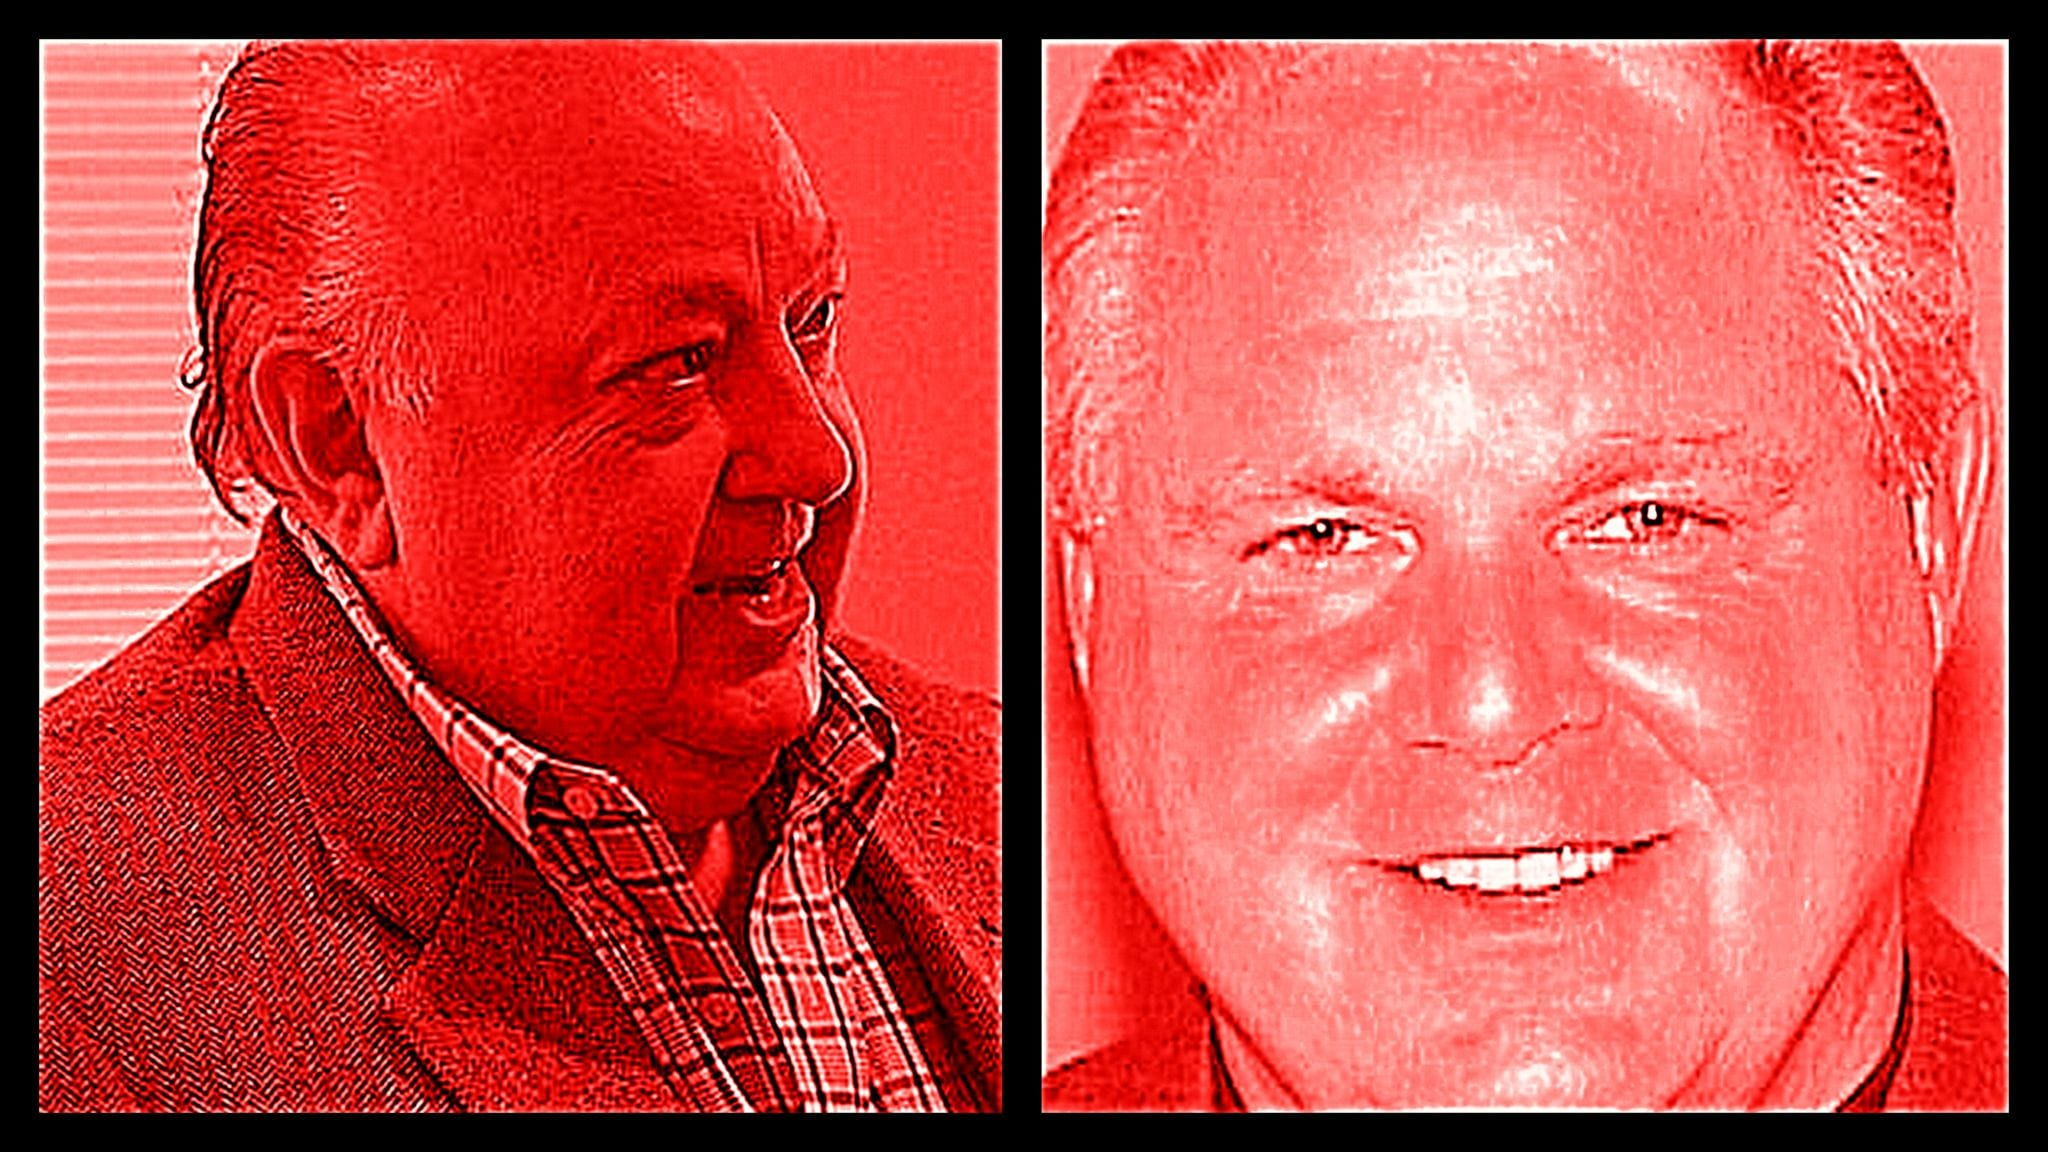 Rush Limbaugh and Roger Ailes